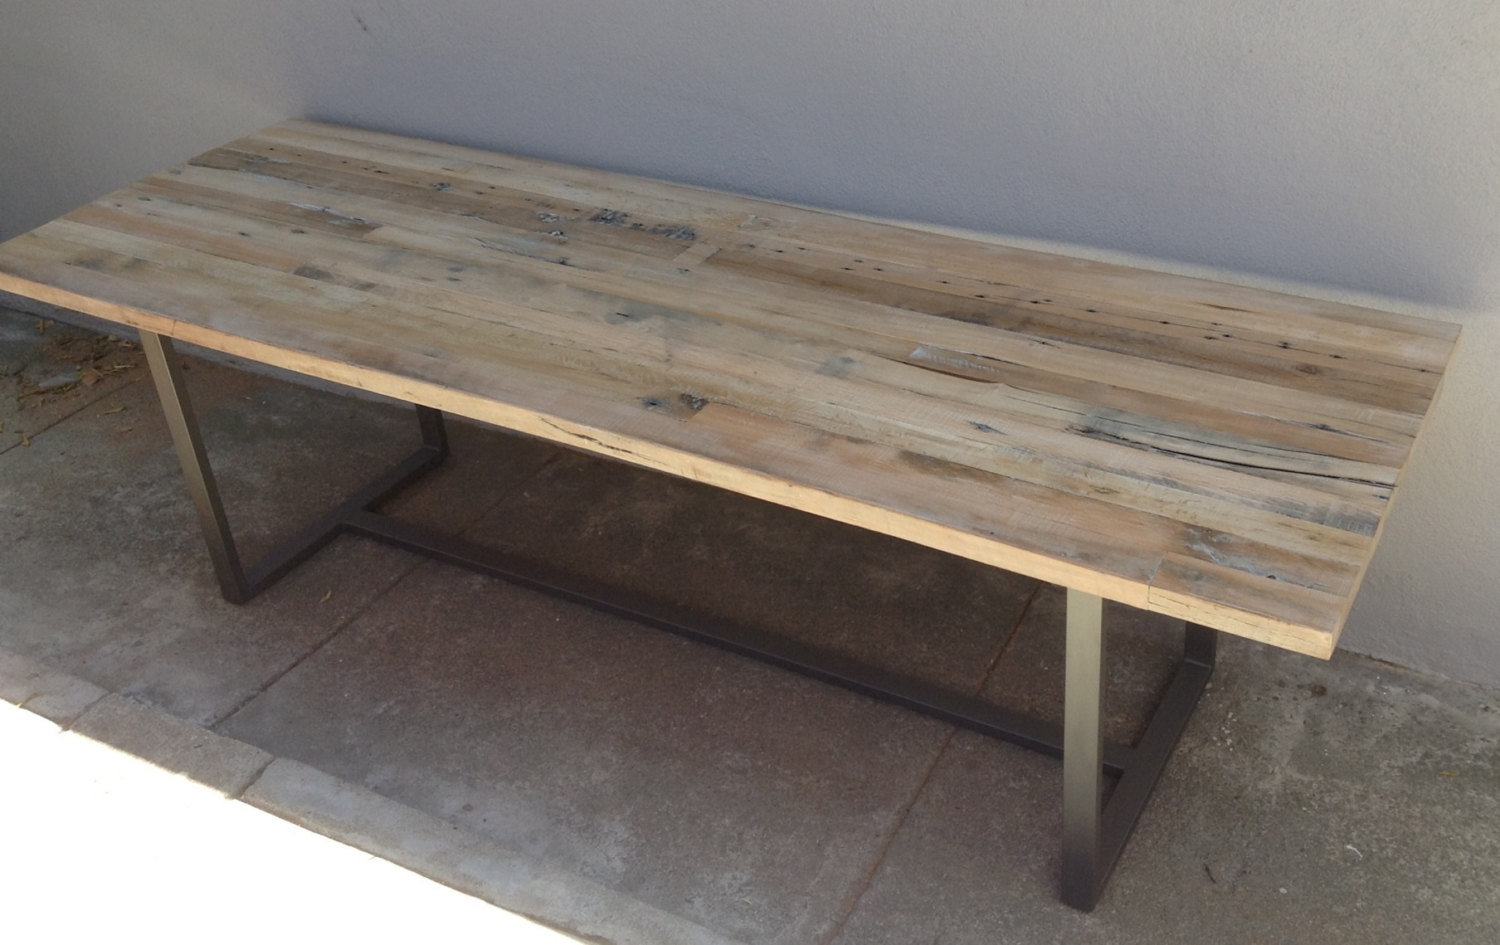 Reclaimed Wood Rustic Industrial Modern Farmhouse Style Indoor Outdoor Dining Table Coffee